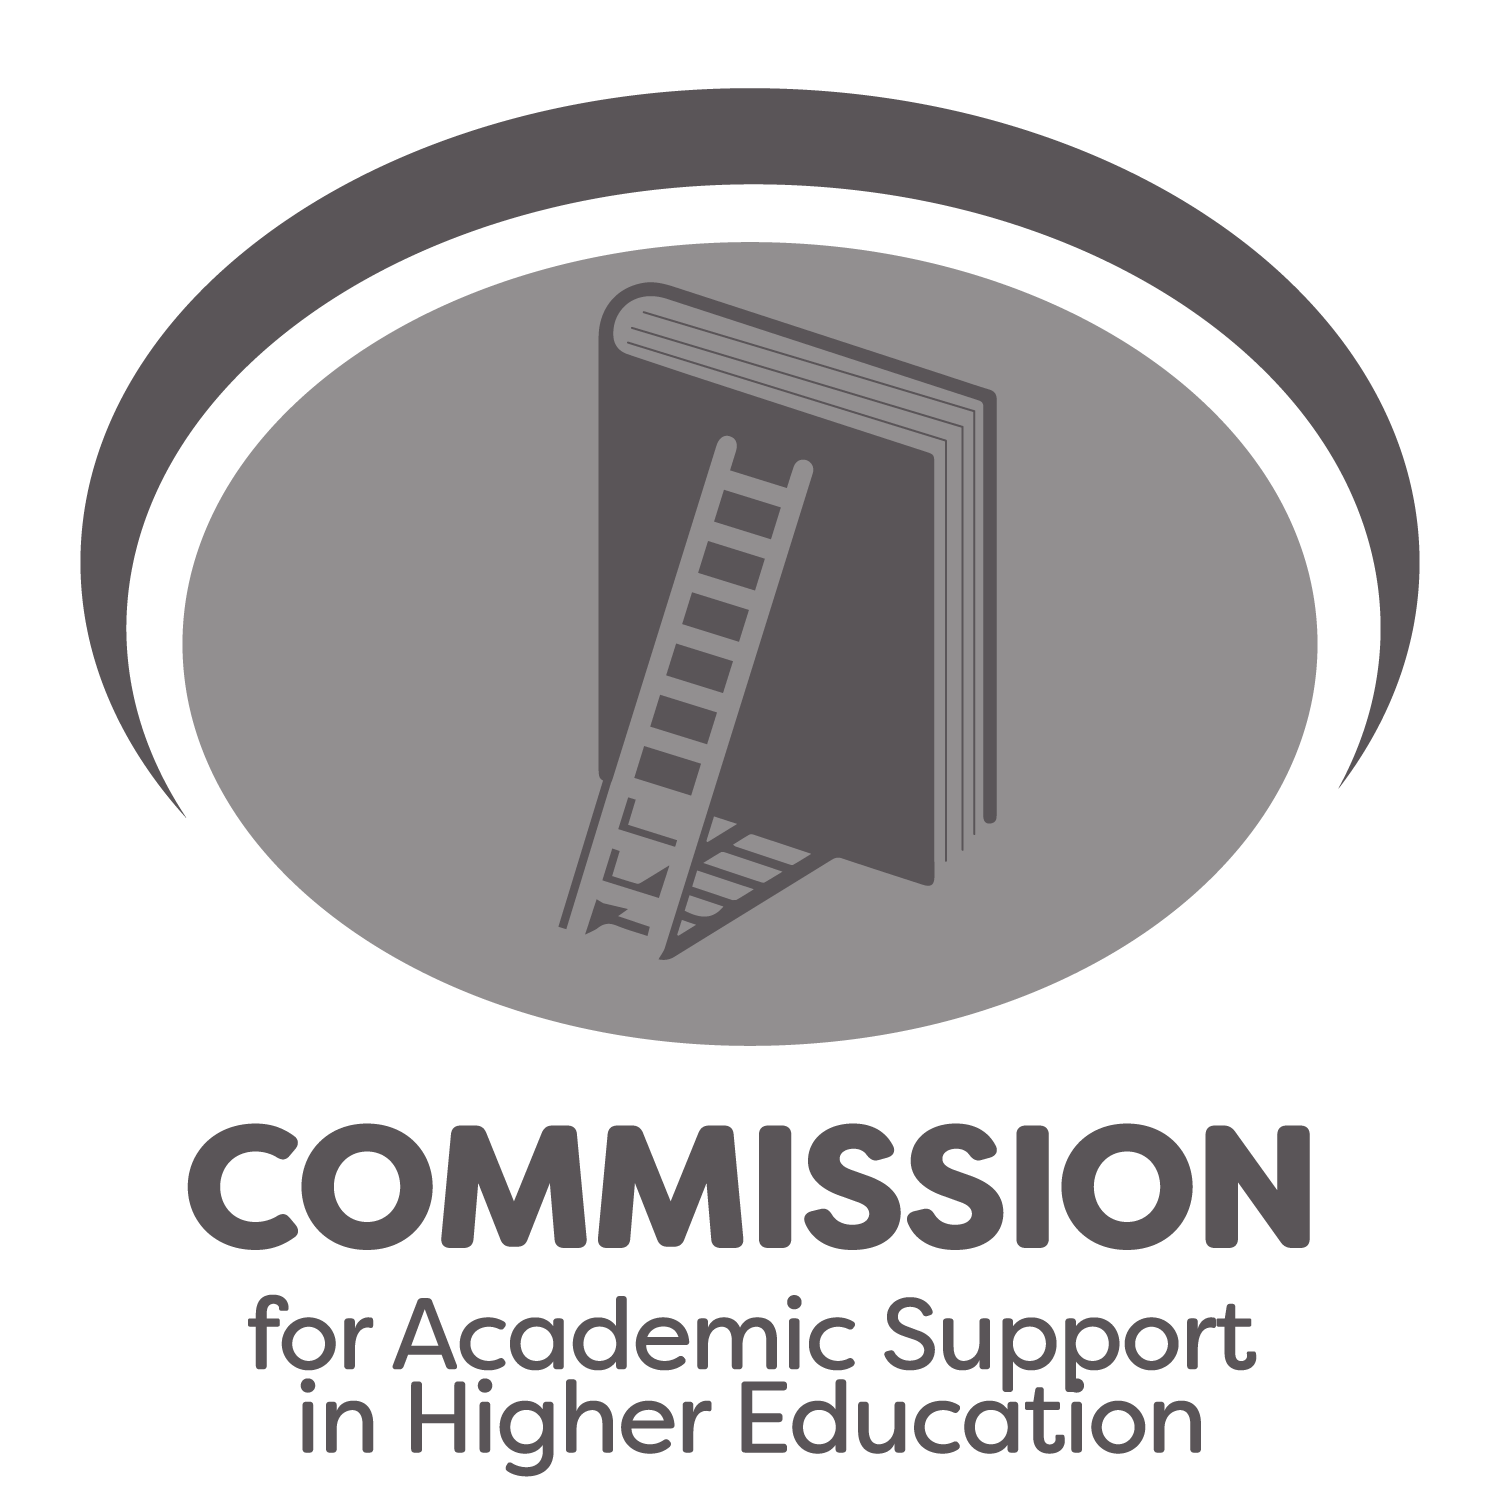 Commssion for Academic Support in Higher Education logo